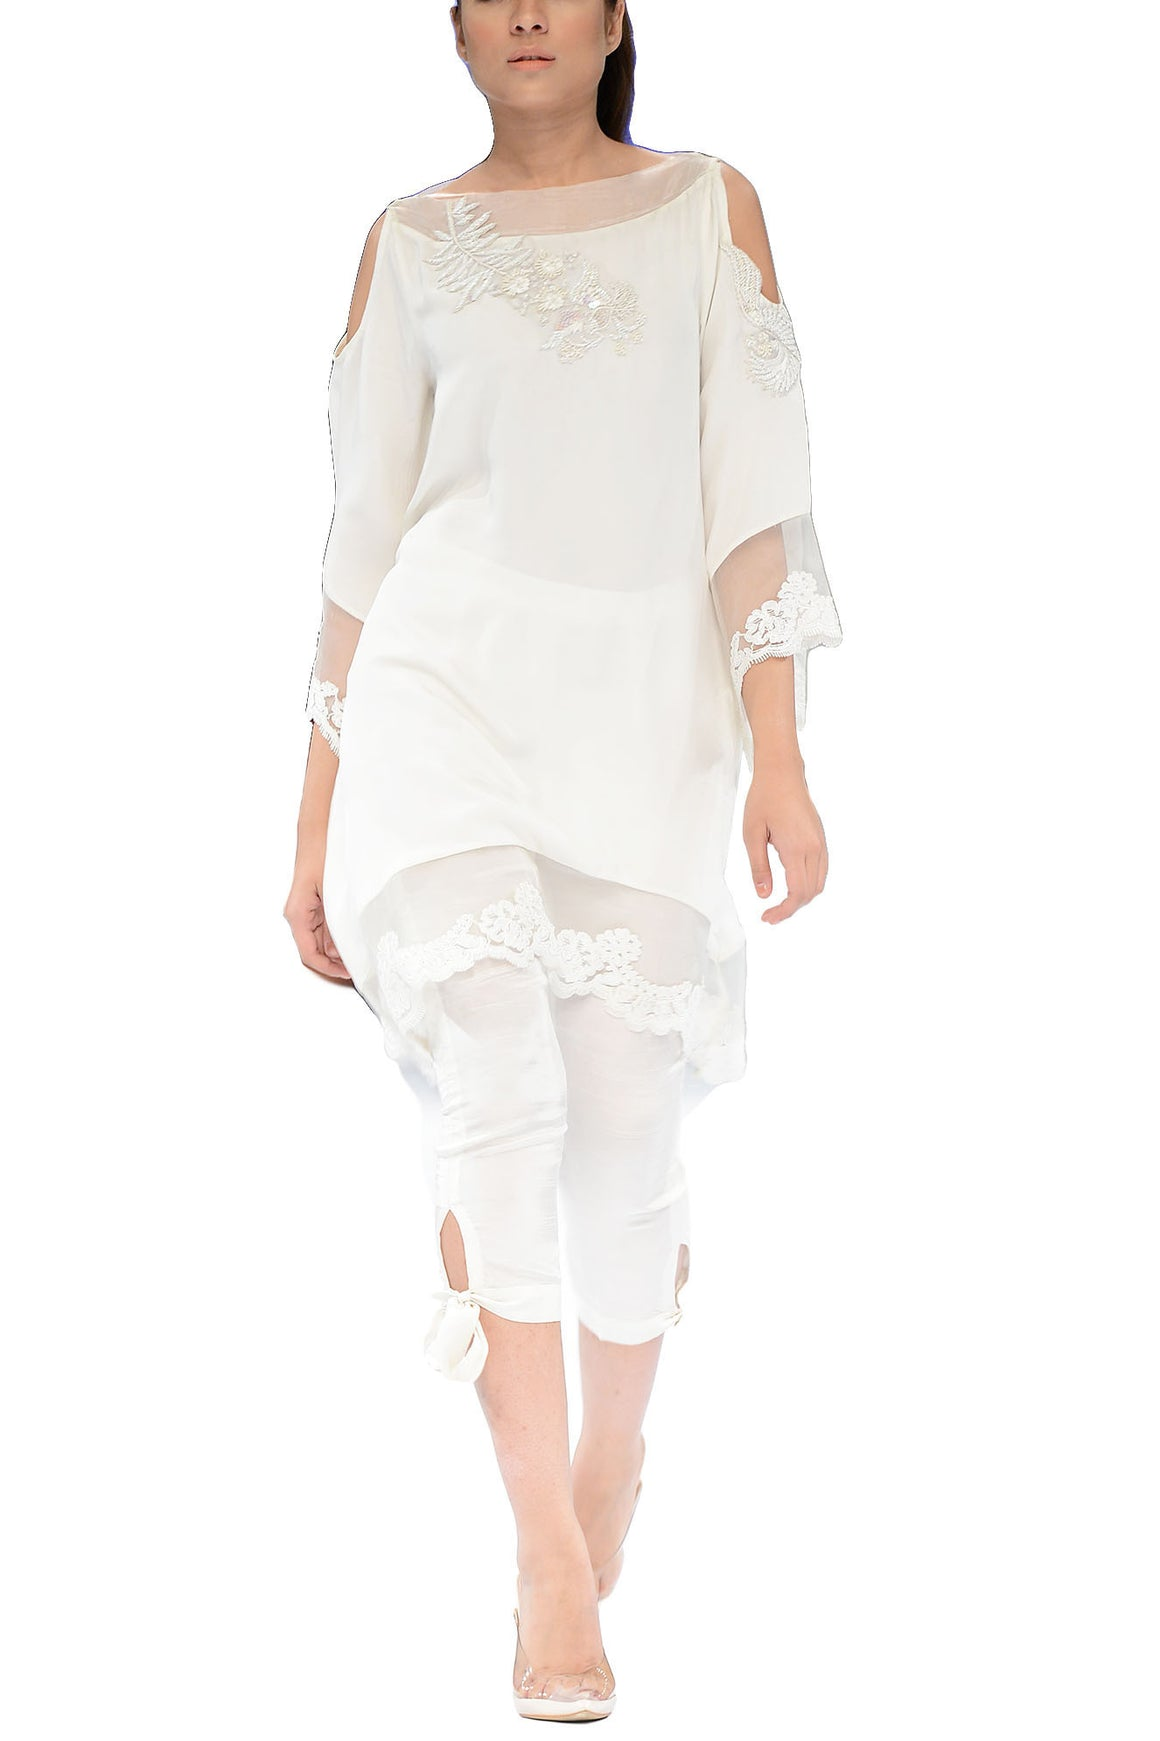 Deepak Perwani - Snowflake White Cotton Silk Shirt With Cotton Silk Capri